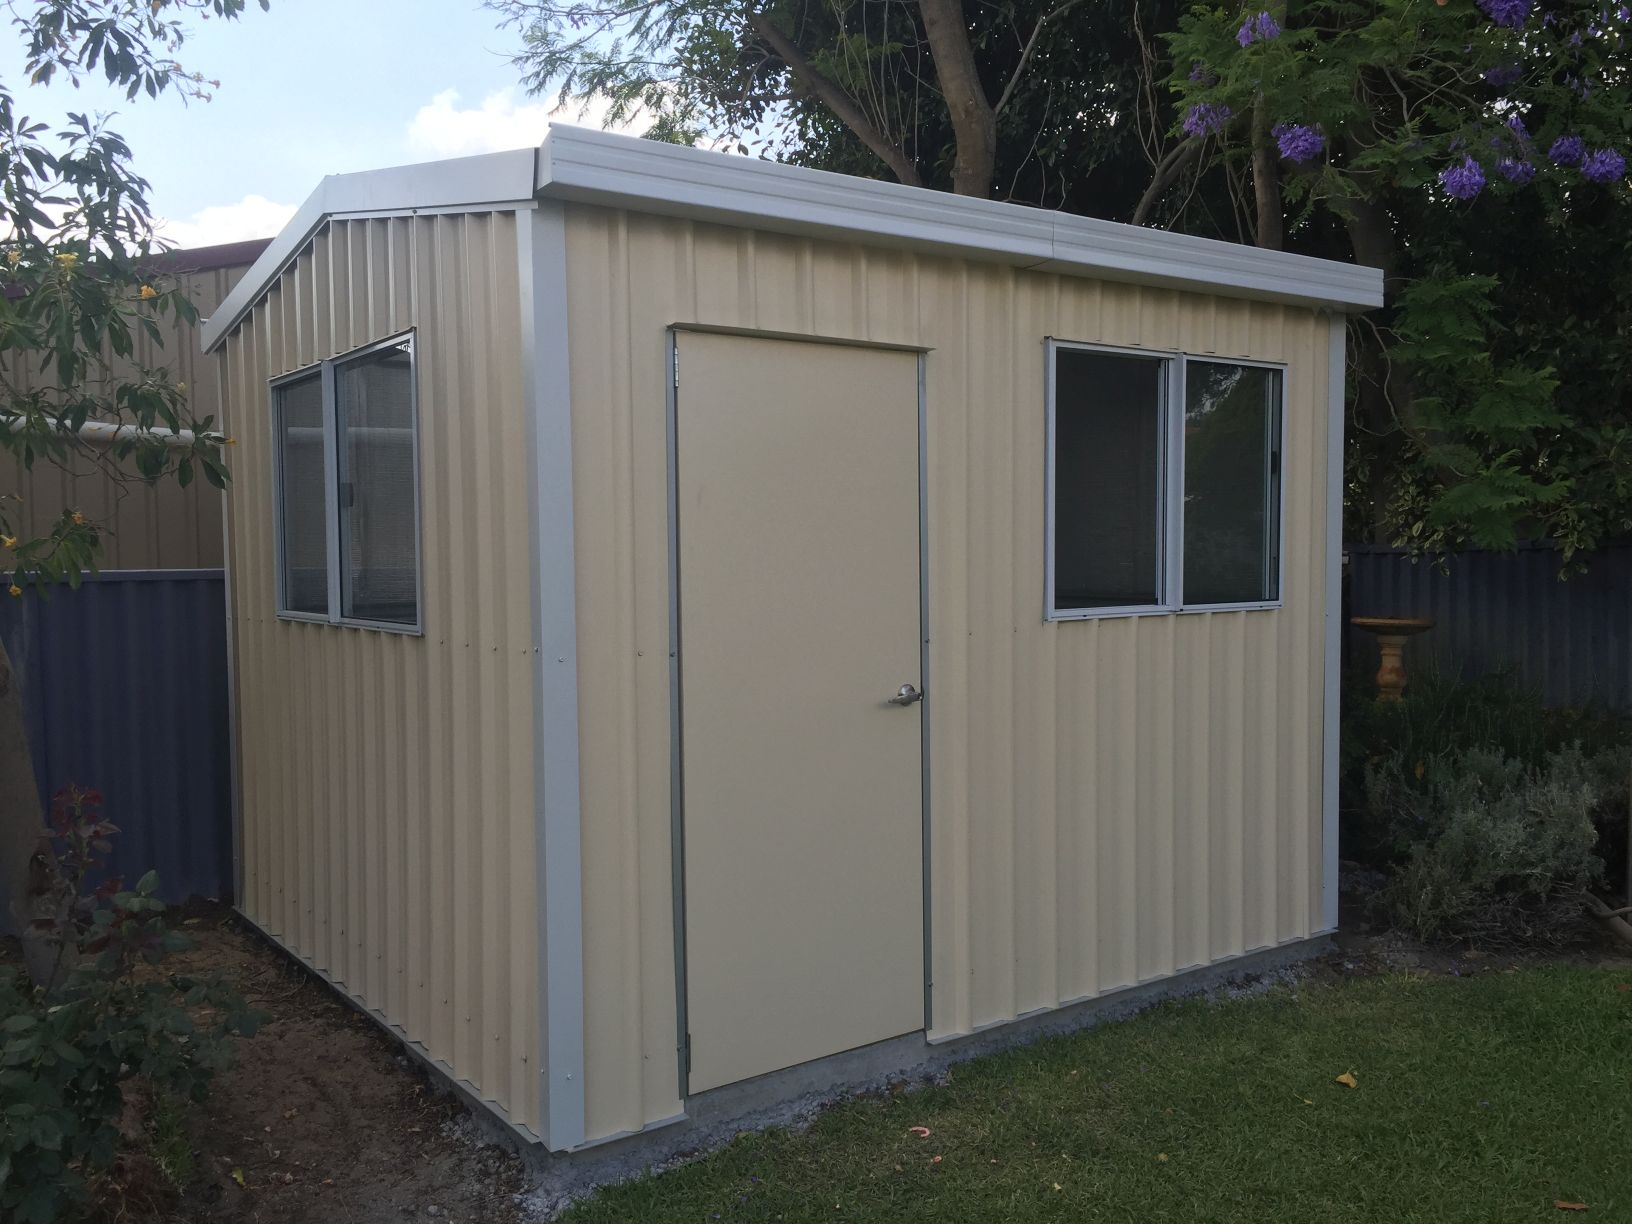 Garden Sheds 3m X 3m perfect garden sheds 3m x 4m shed with sliding door windows